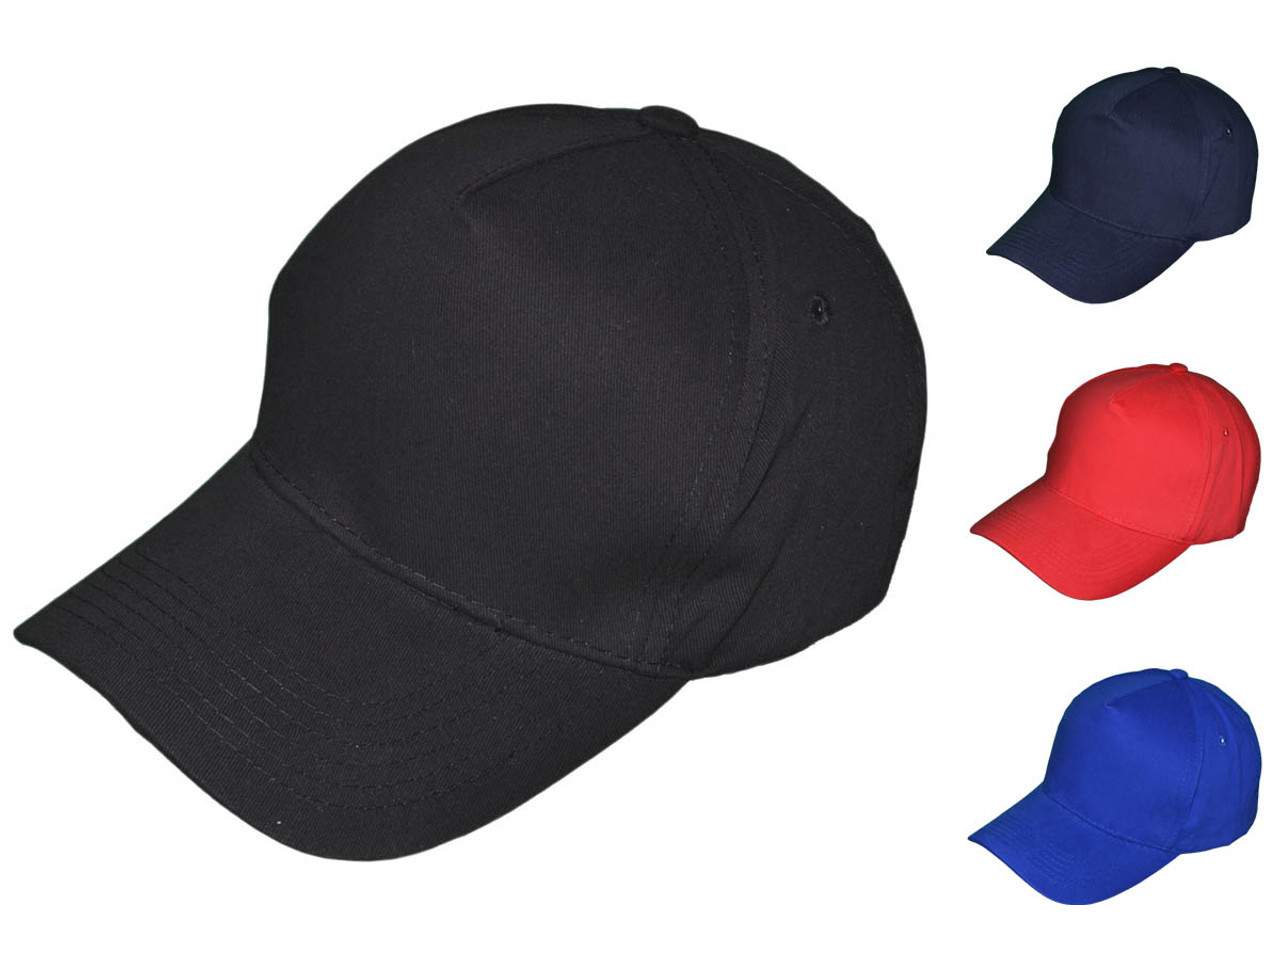 c59e9ef35 Blank Polo Dad Hats - BK Caps Unisex Brushed Cotton Twill 5 Panel Polo  Structured Low Profile Baseball Caps With Brass Strap (4 colors Available)  - ...